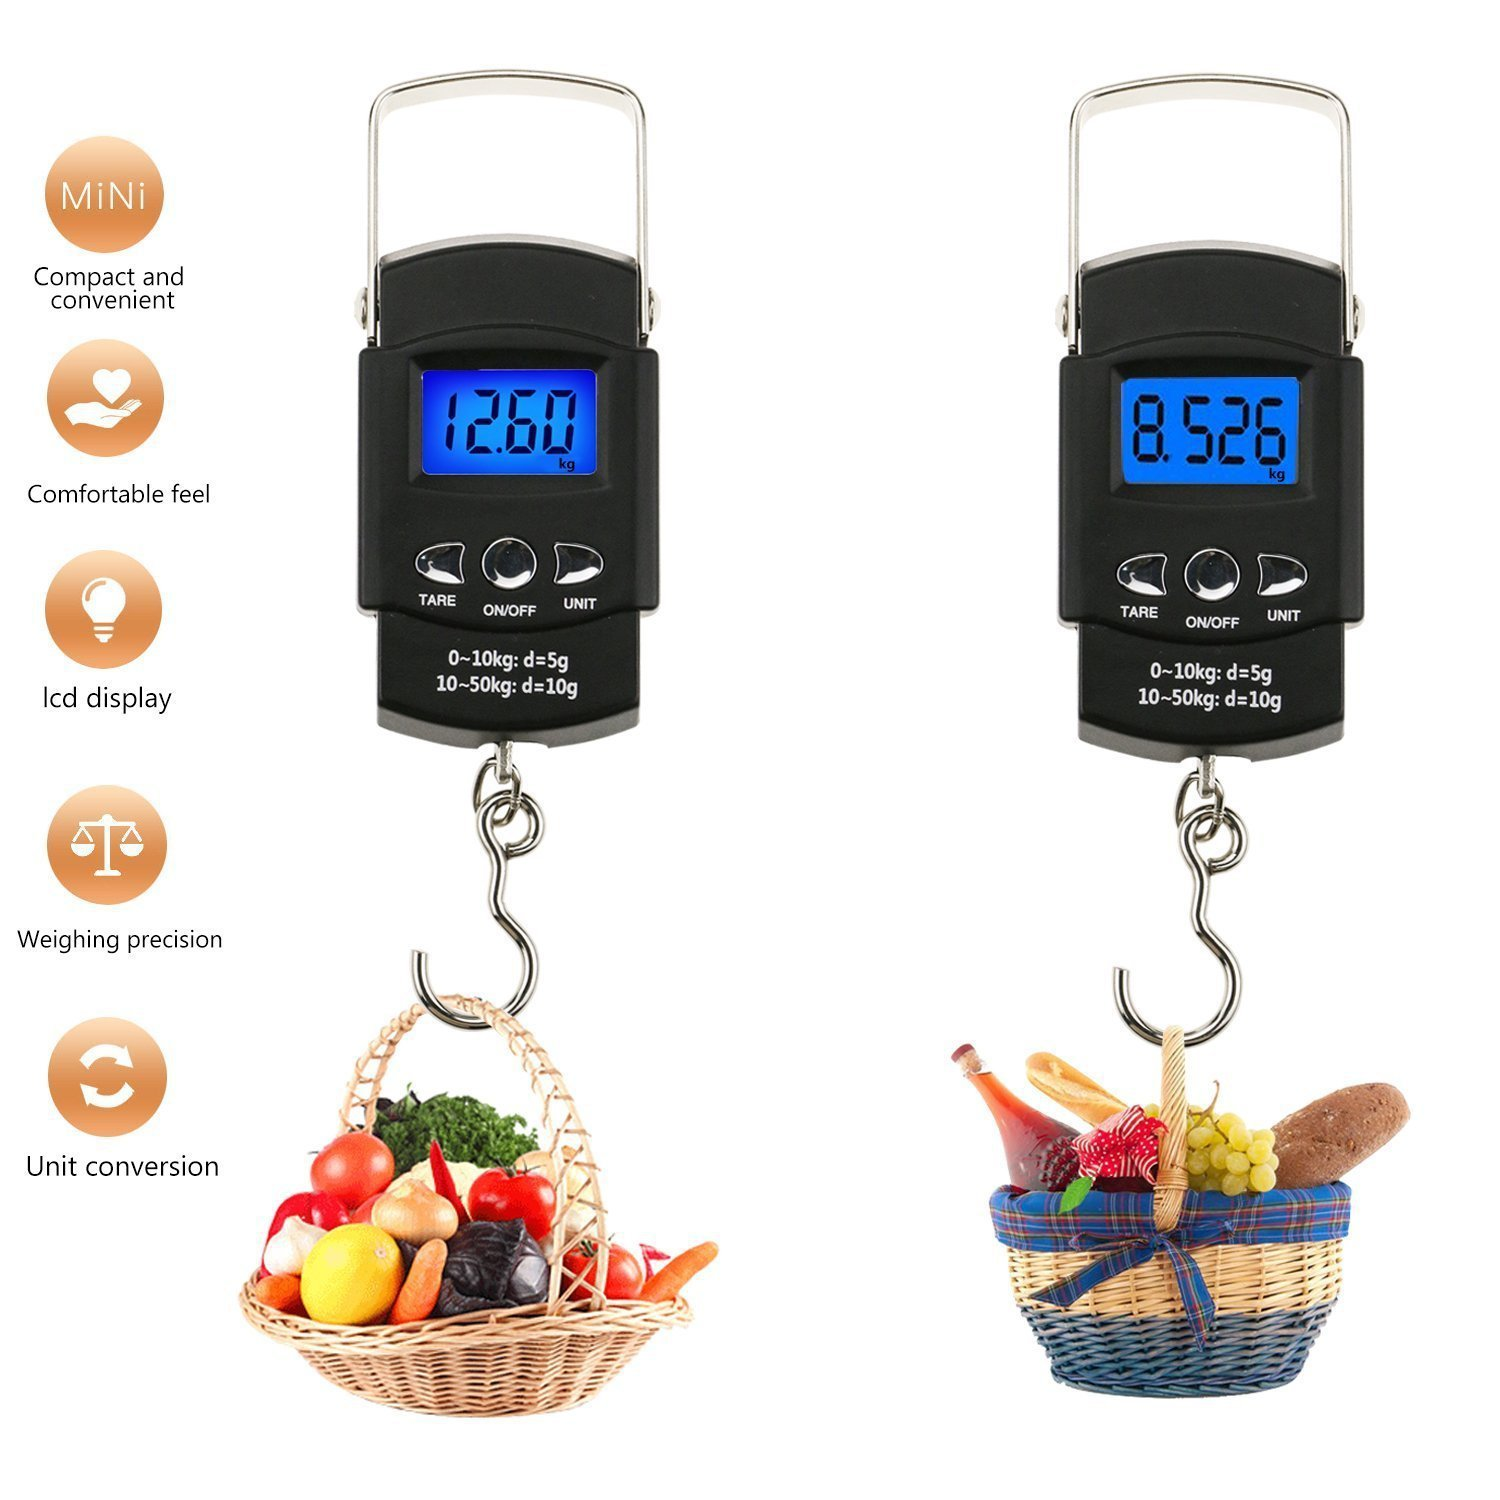 06eb7cac2513 US $7.99 40% OFF|110lb/50kg Electronic Balance Digital Fishing Postal  Hanging Hook Scale with Measuring Tape Backlit LCD Display Digital Scale-in  ...